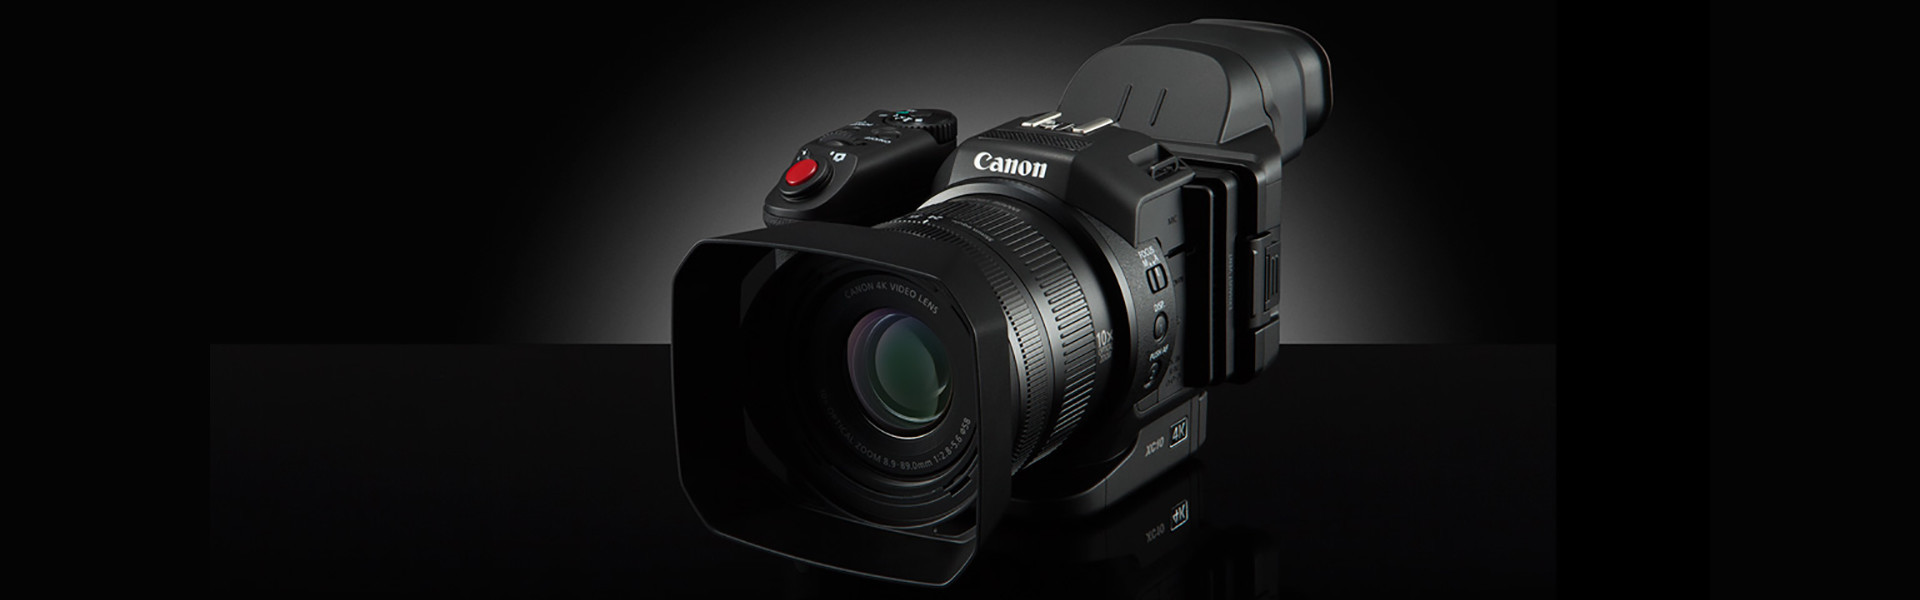 Header image for article At the Bench: Canon XC10 Overview